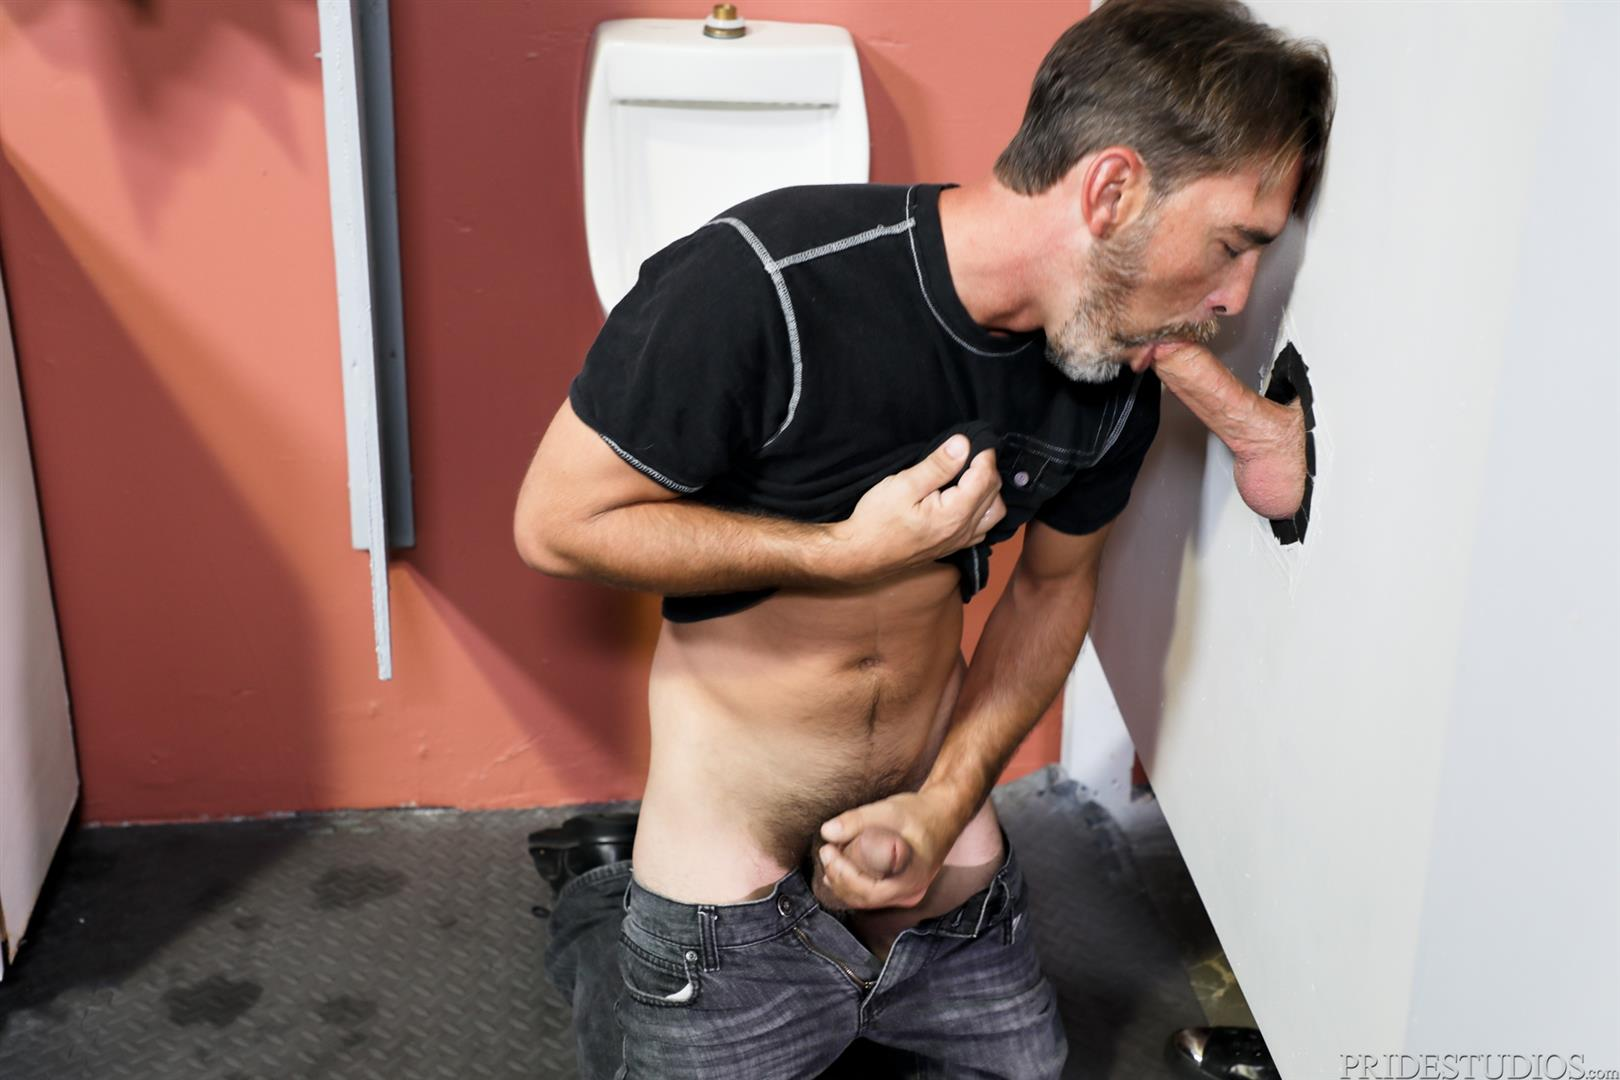 Men-Over-30-Joe-Parker-and-Jack-Andy-Sucking-Daddy-Dick-At-A-Gloryhole-04 Sucking A Thick Daddy Cock At A Gloryhole In A Public Bathroom